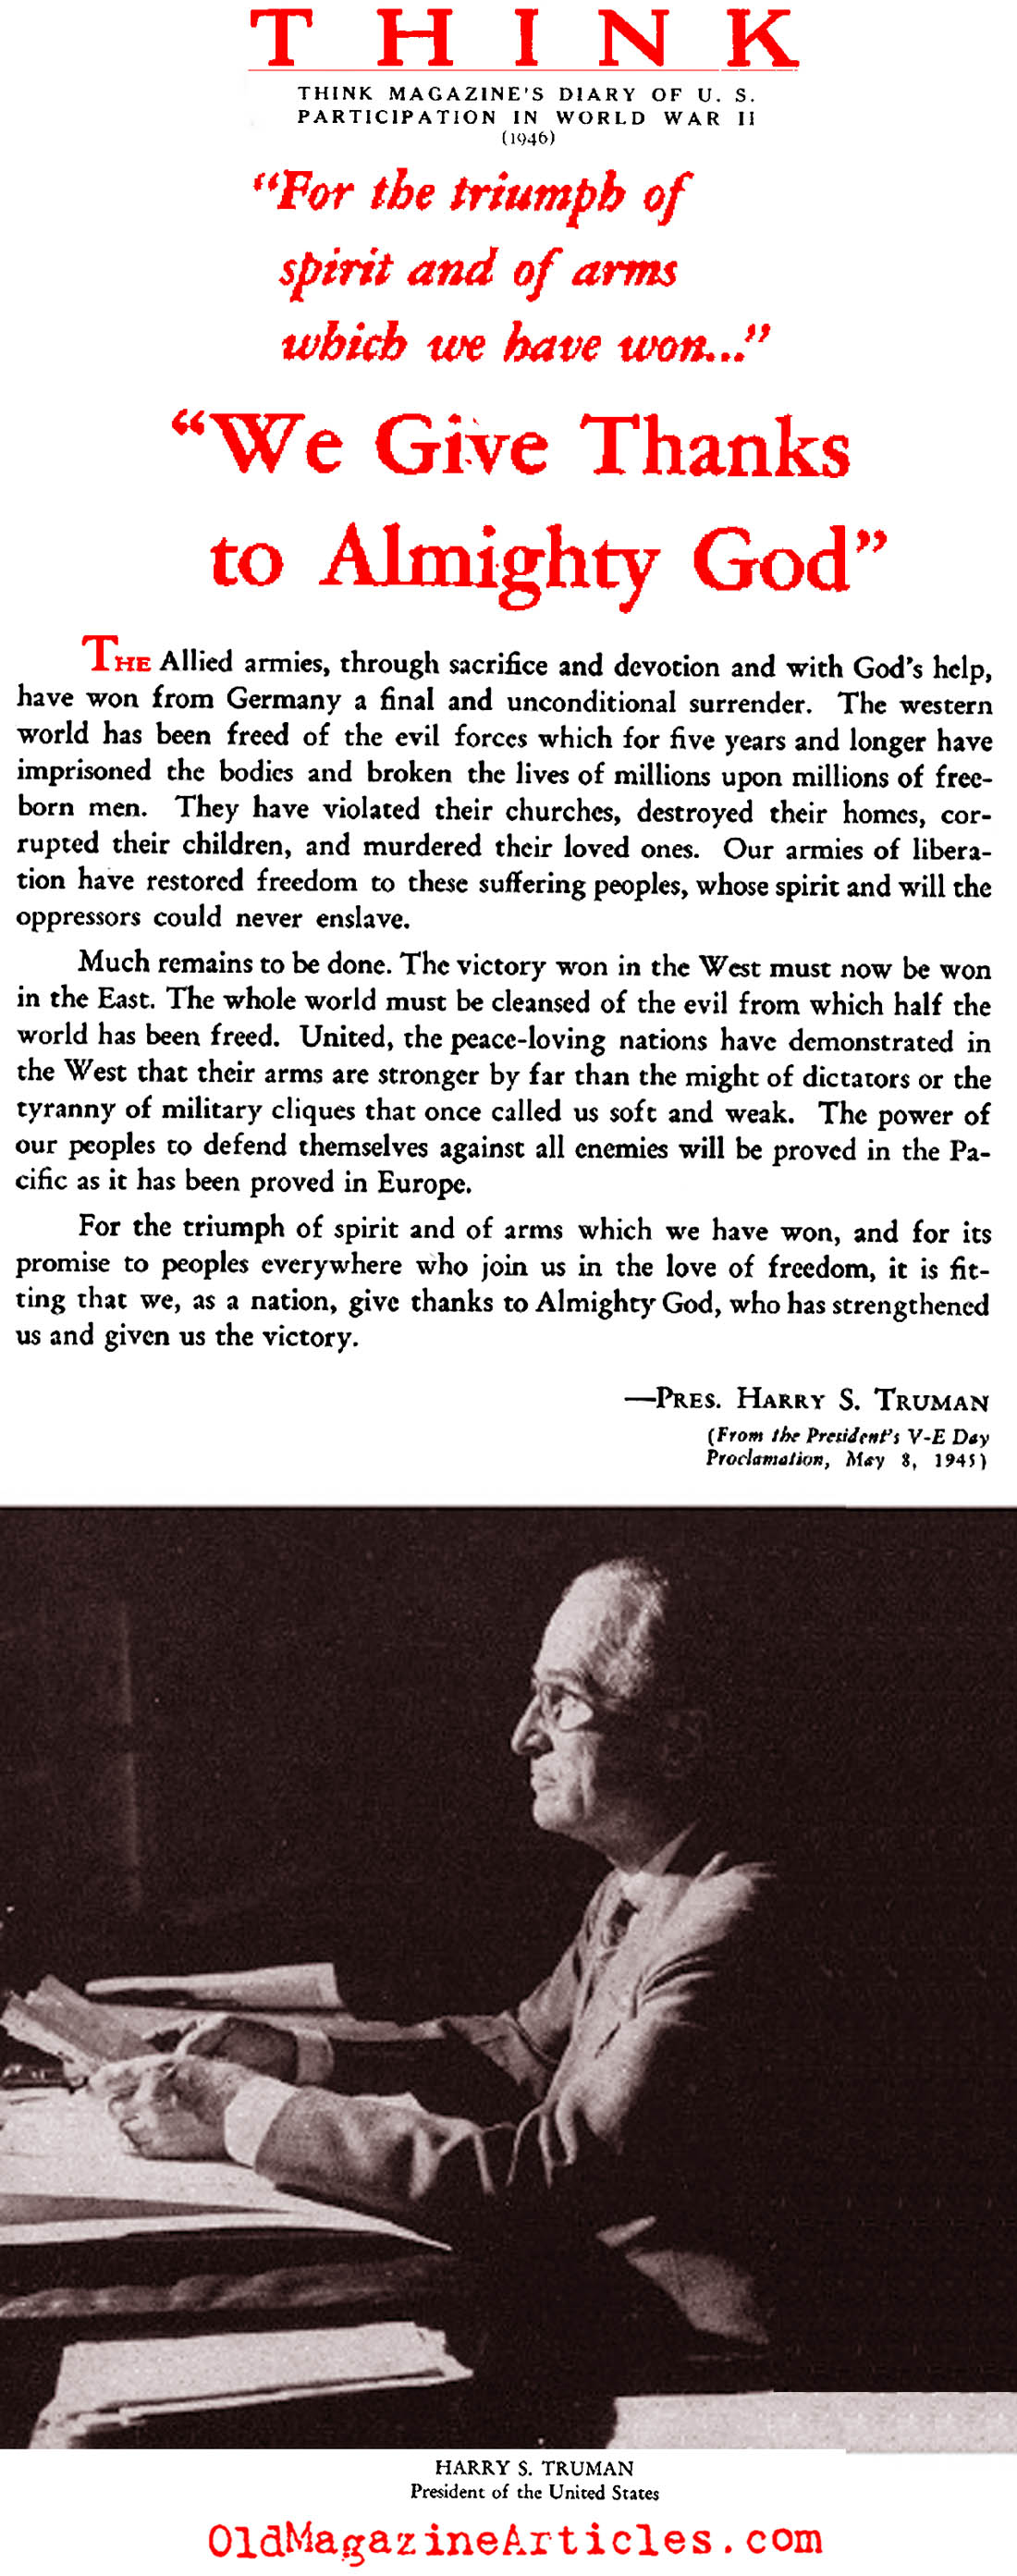 President Truman's VE-Day Proclamation (Think Magazine, 1946)